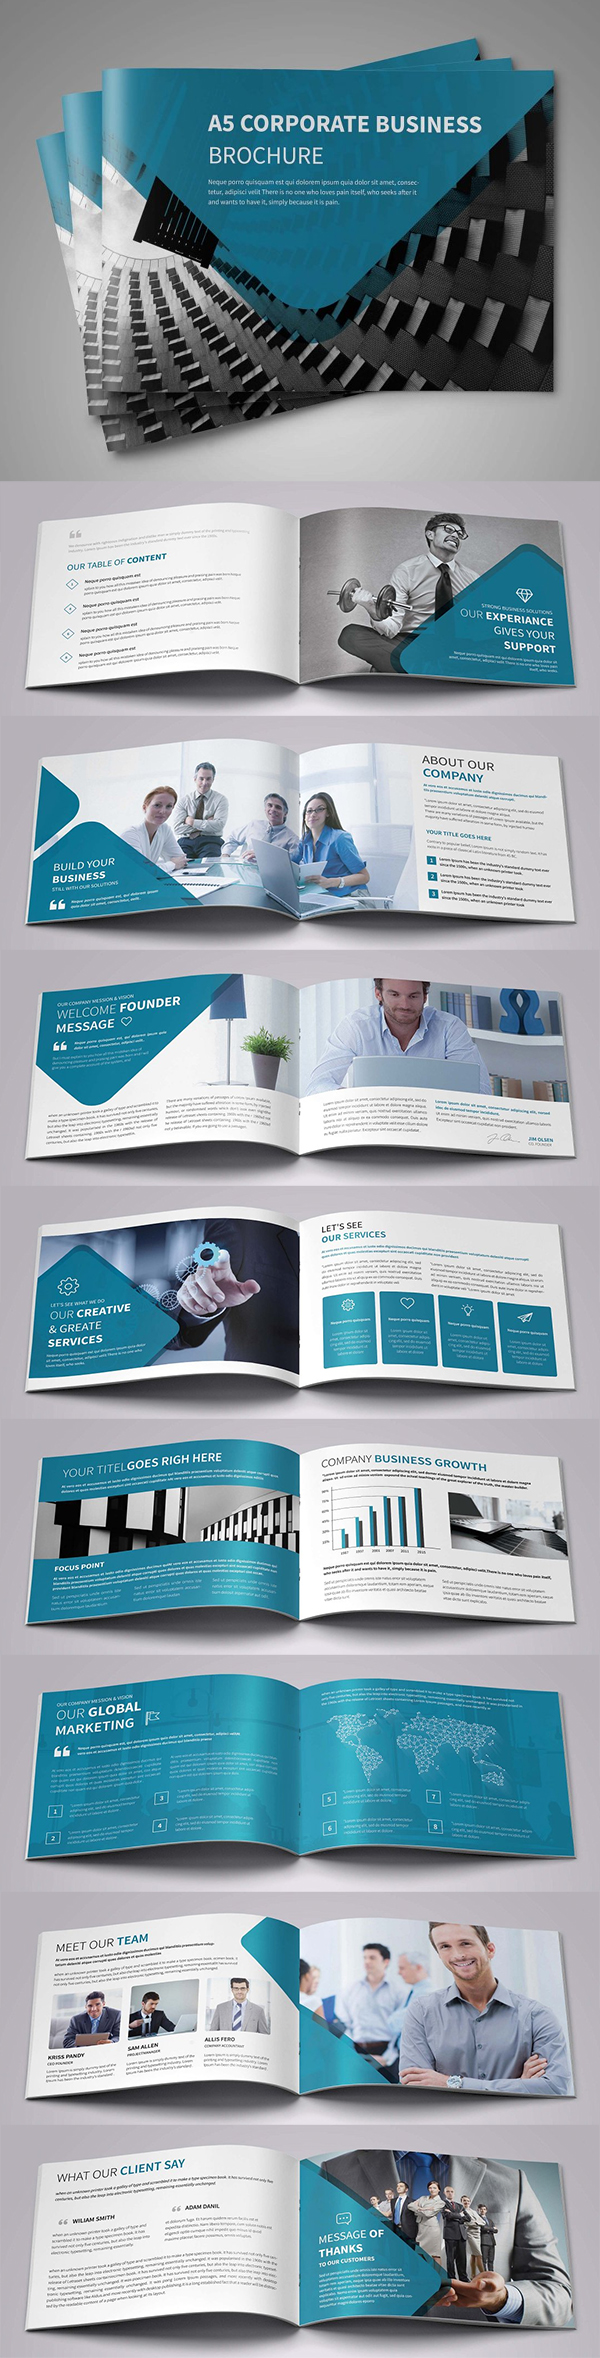 Corporate Landscape Brochure Template